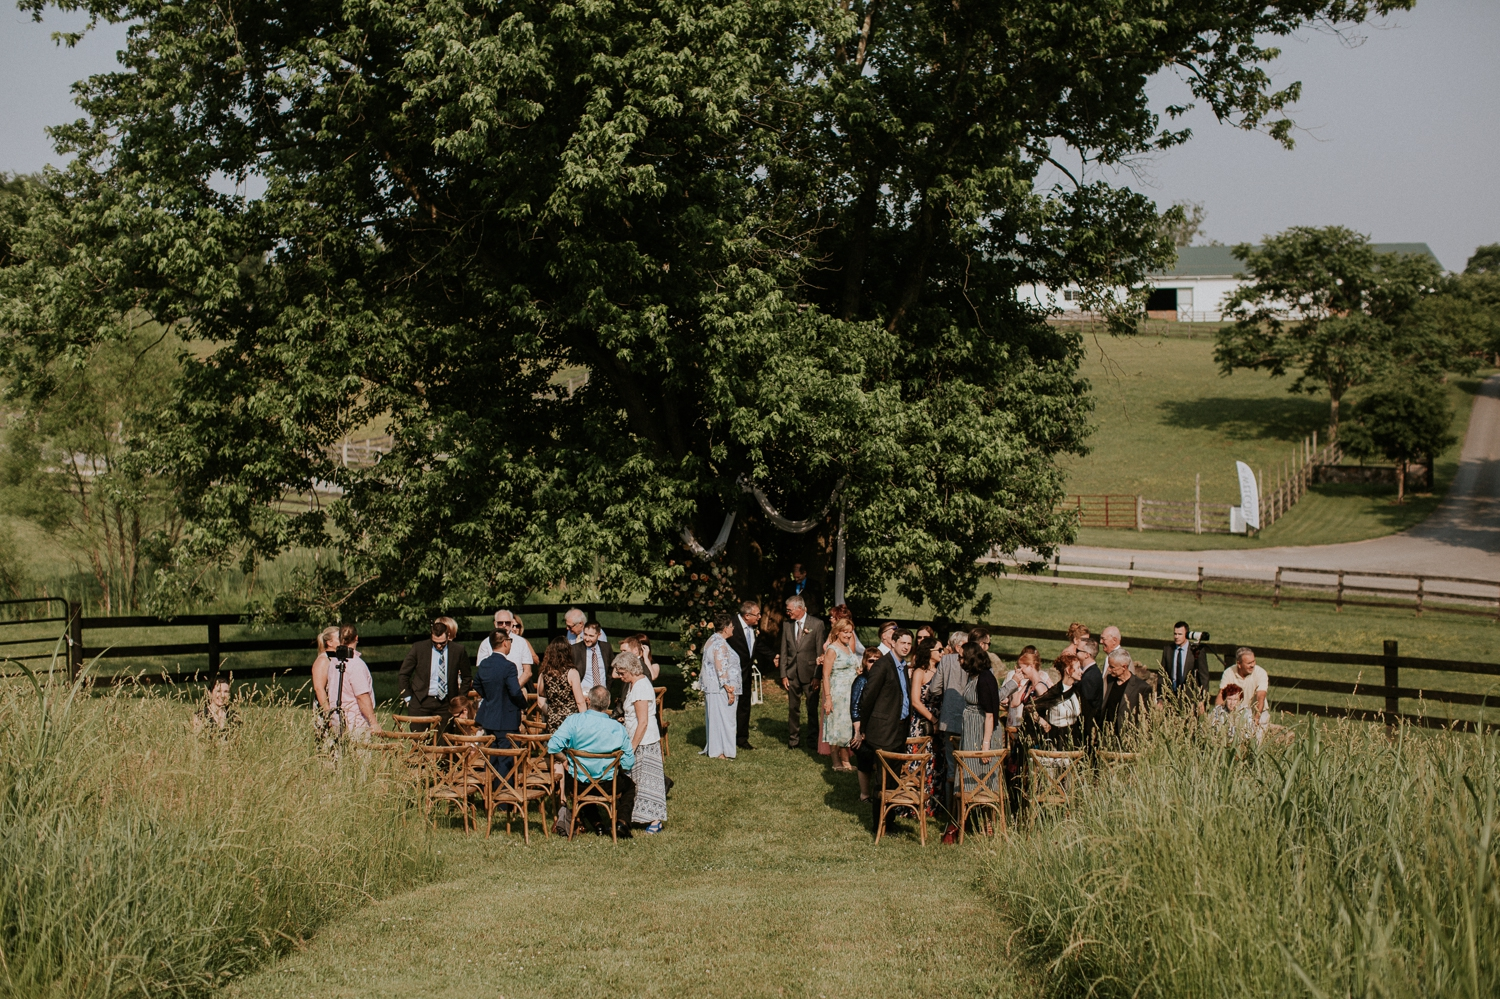 purceville-virginia-tranquility-farms-wedding-photography-planning-coordination 43.jpg